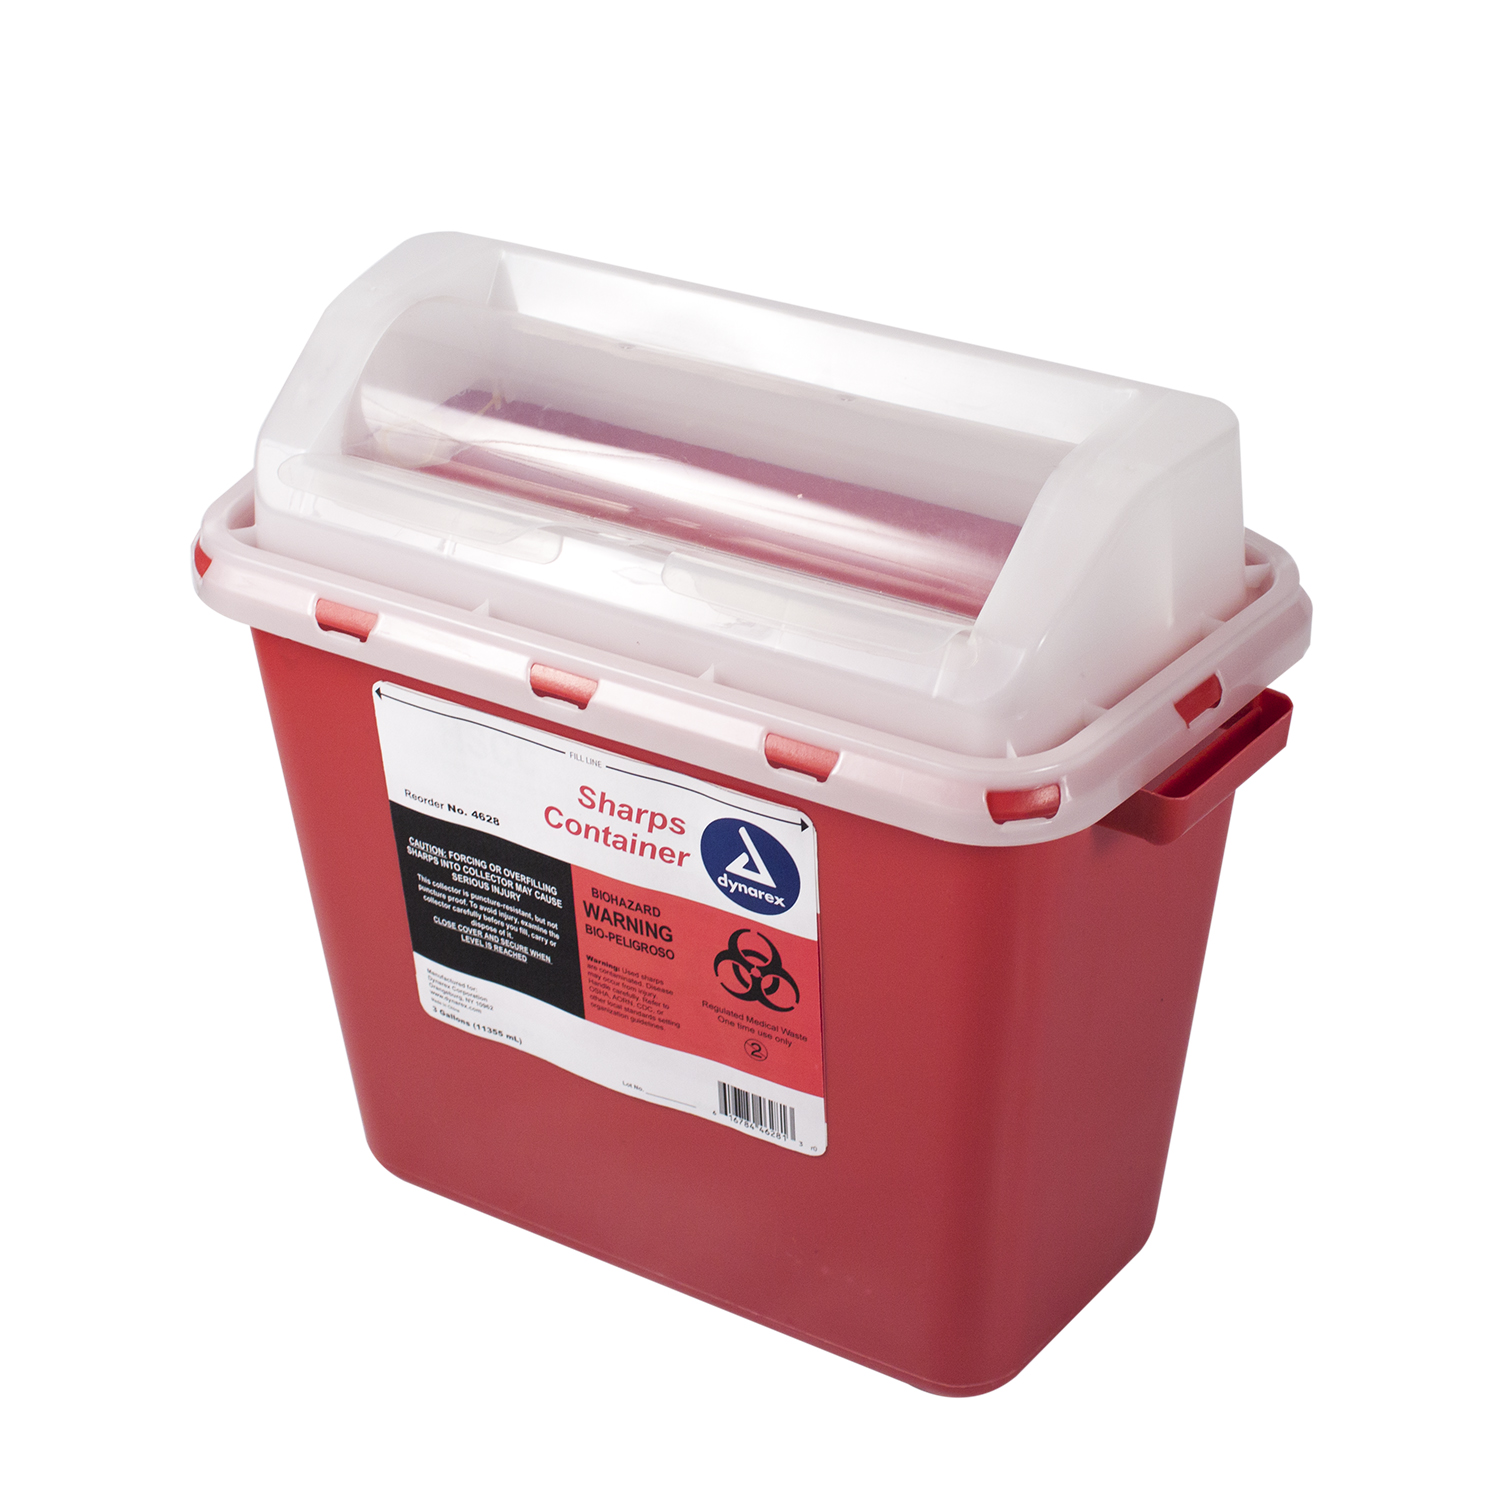 Sharps Containers - 3gal.